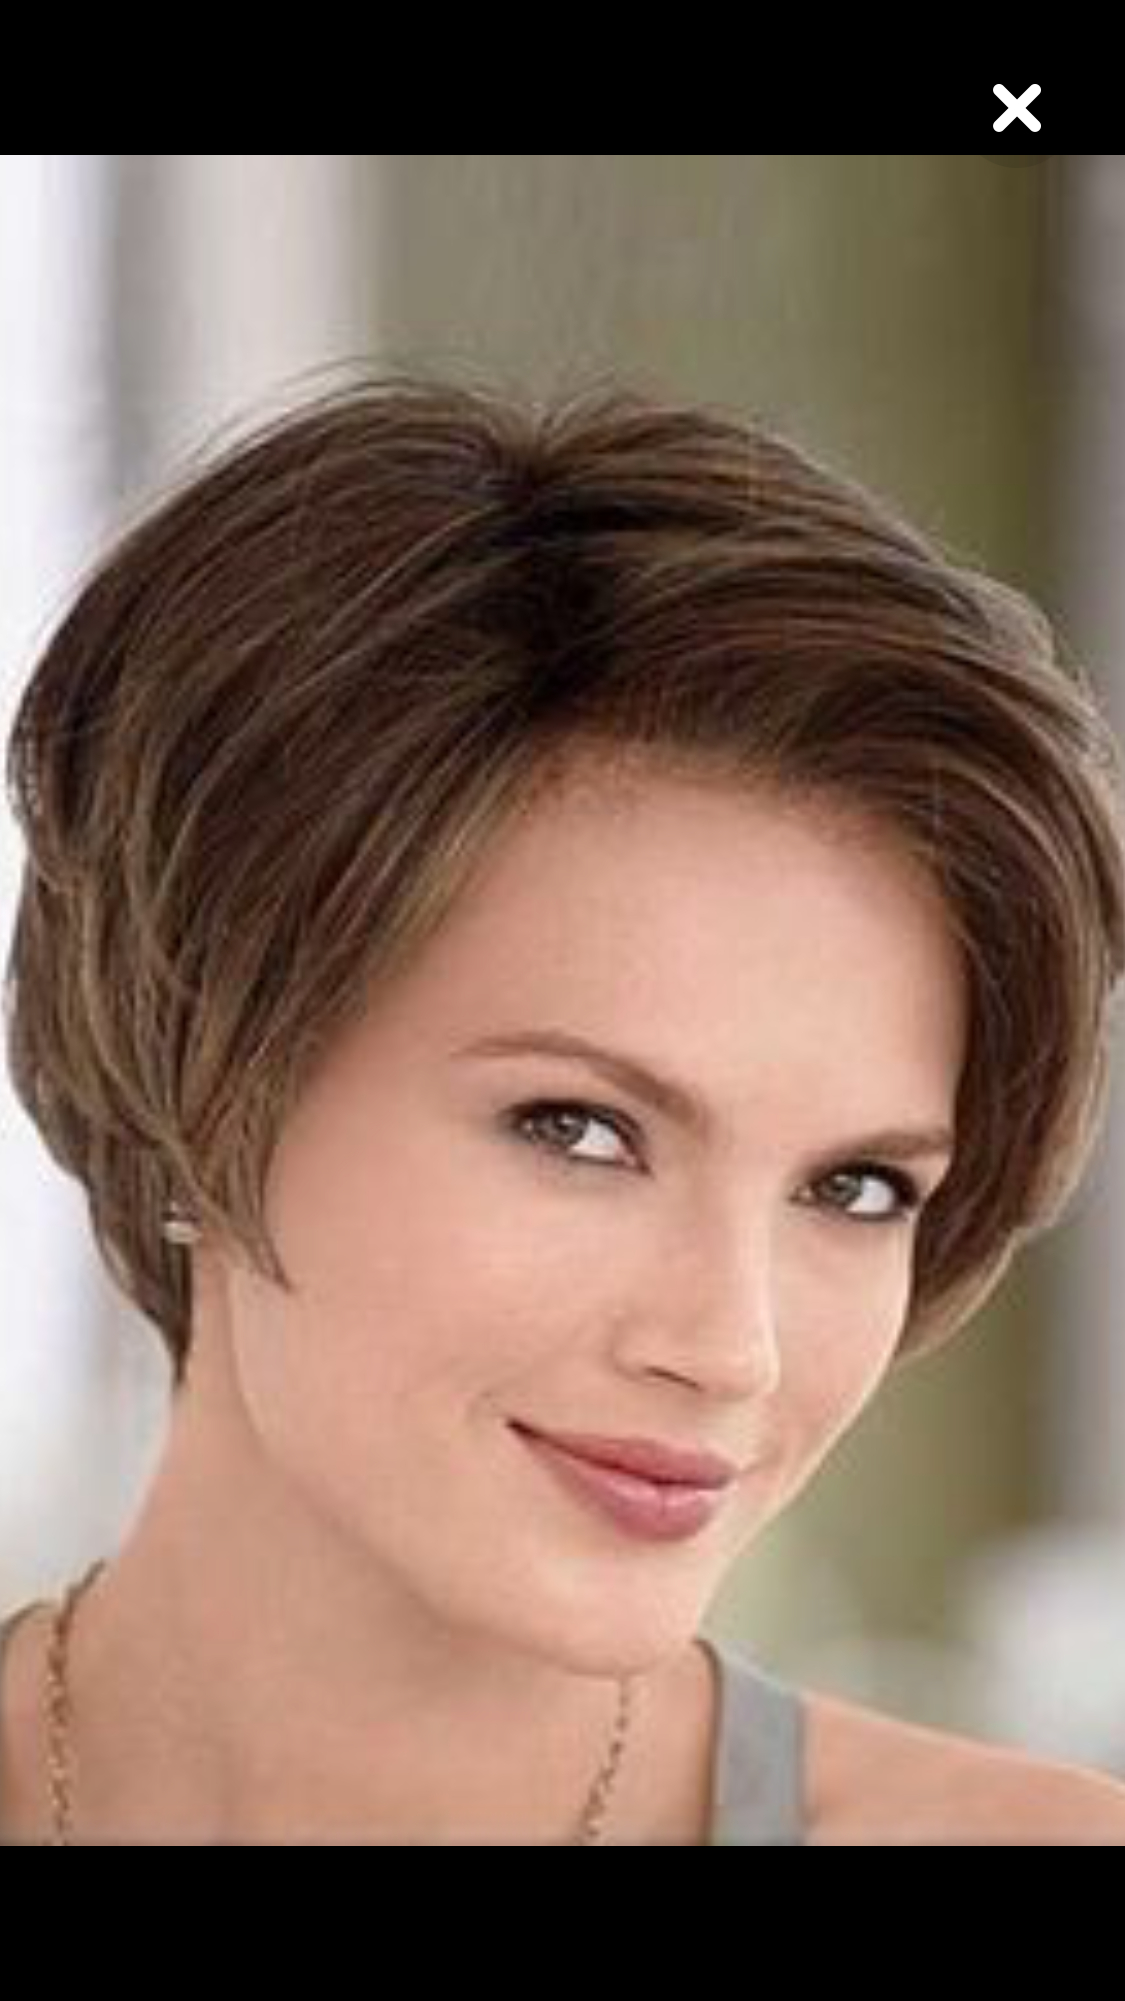 Pinronda Walker On Hair In 2018 | Pinterest | Hair Styles, Short With Oval Face Short Hair (View 24 of 25)